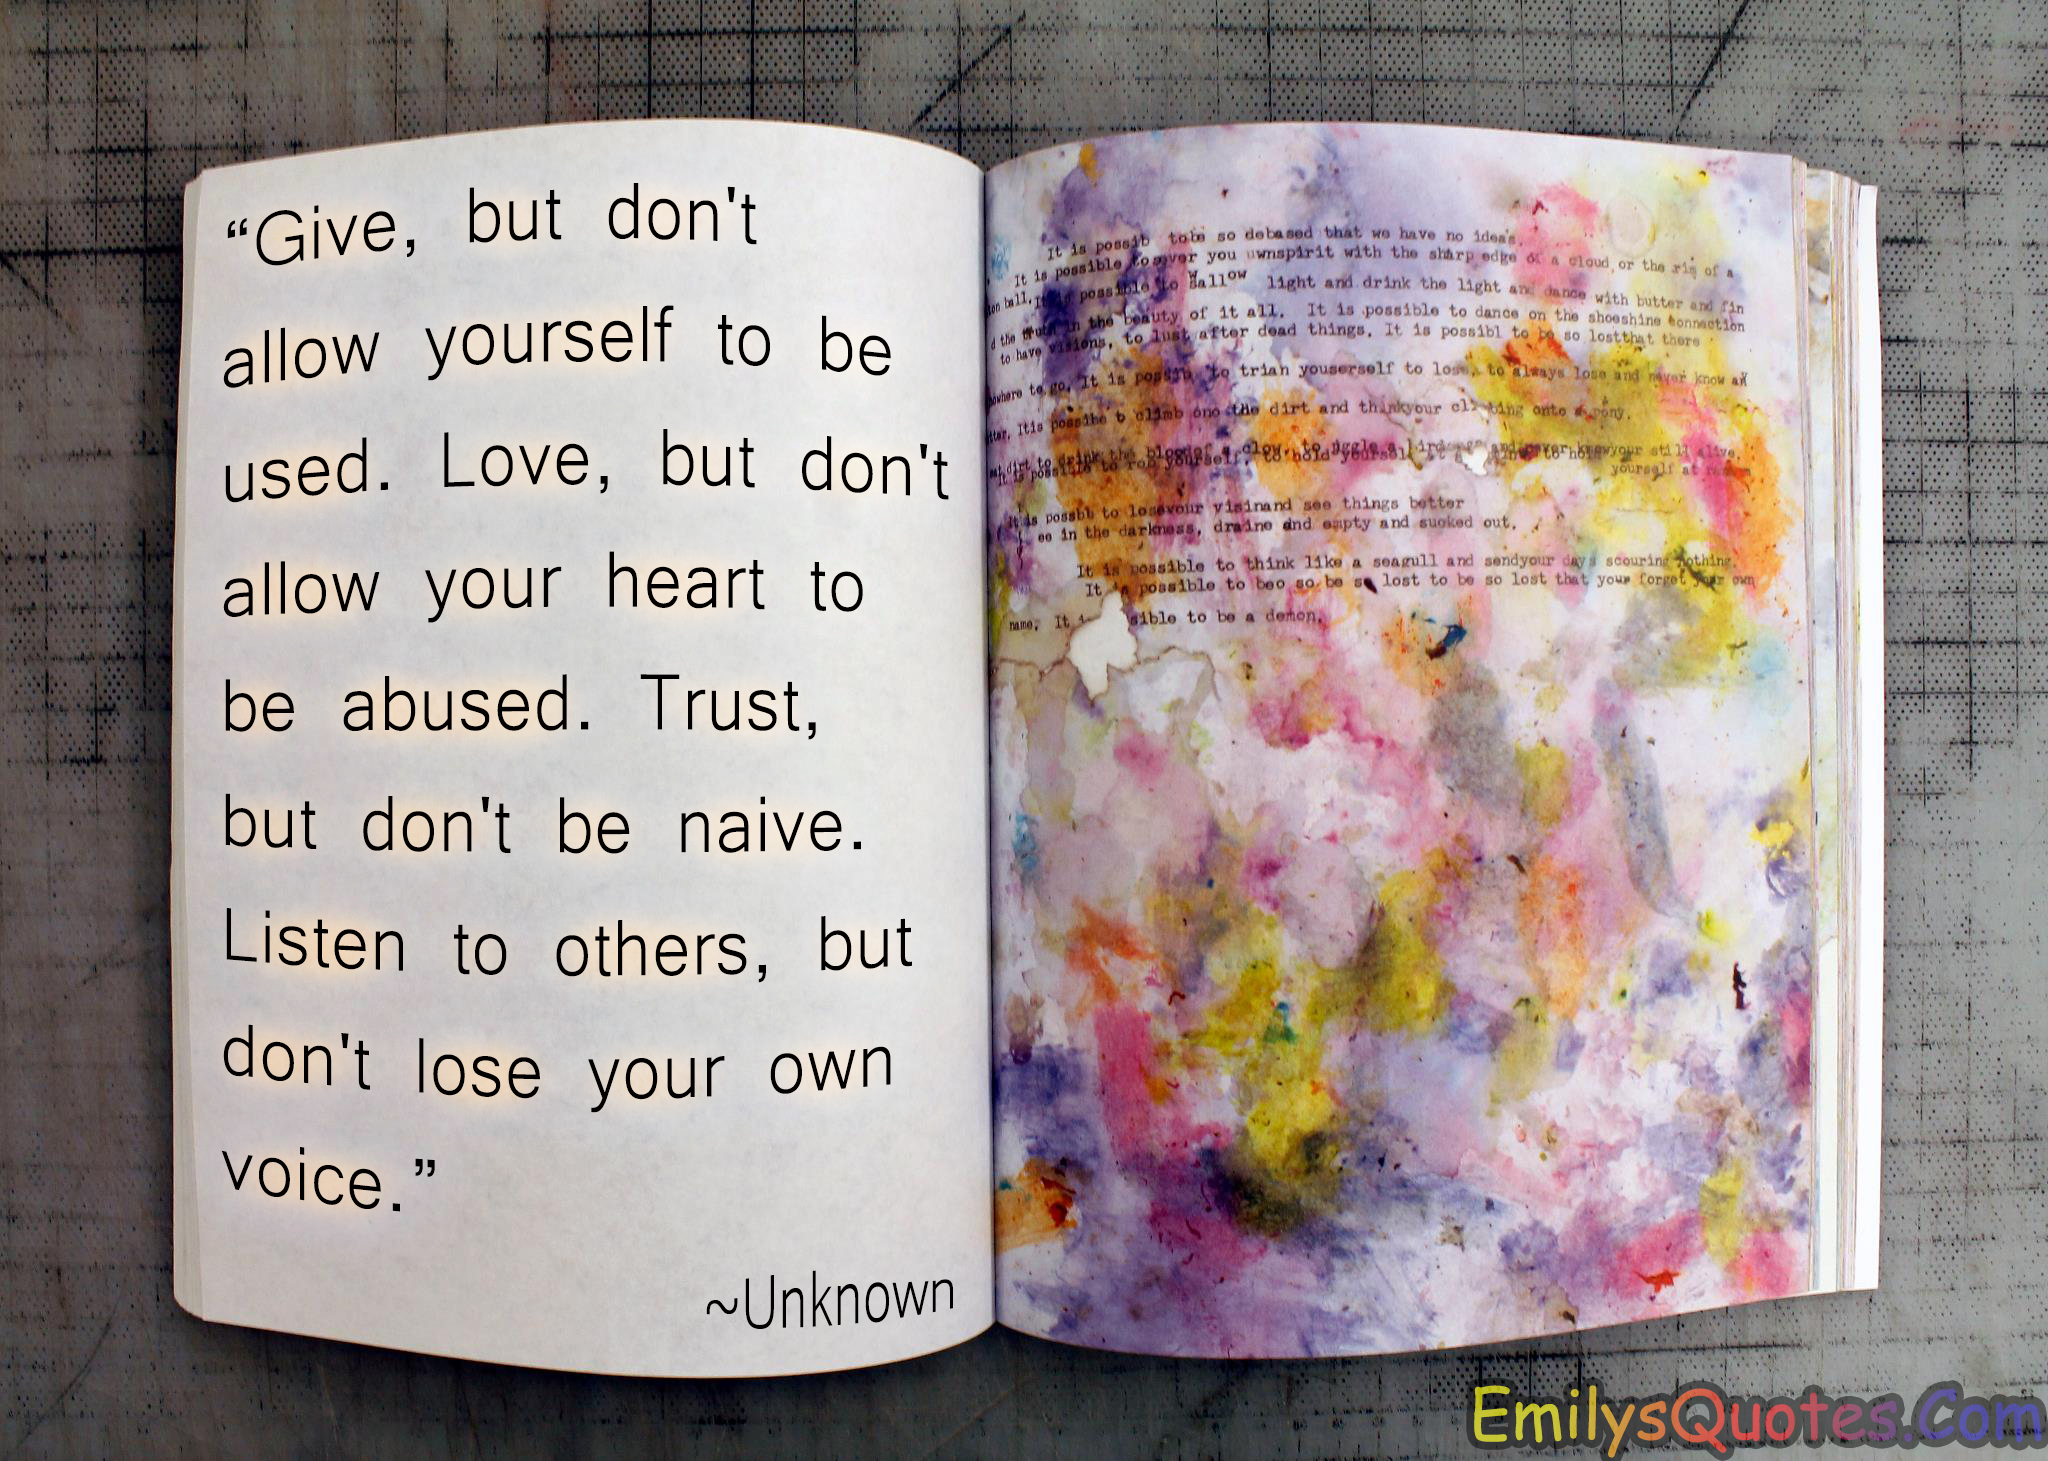 Quotes About Trust And Love In Relationships Give But Don't Allow Yourself To Be Usedlove But Don't Allow